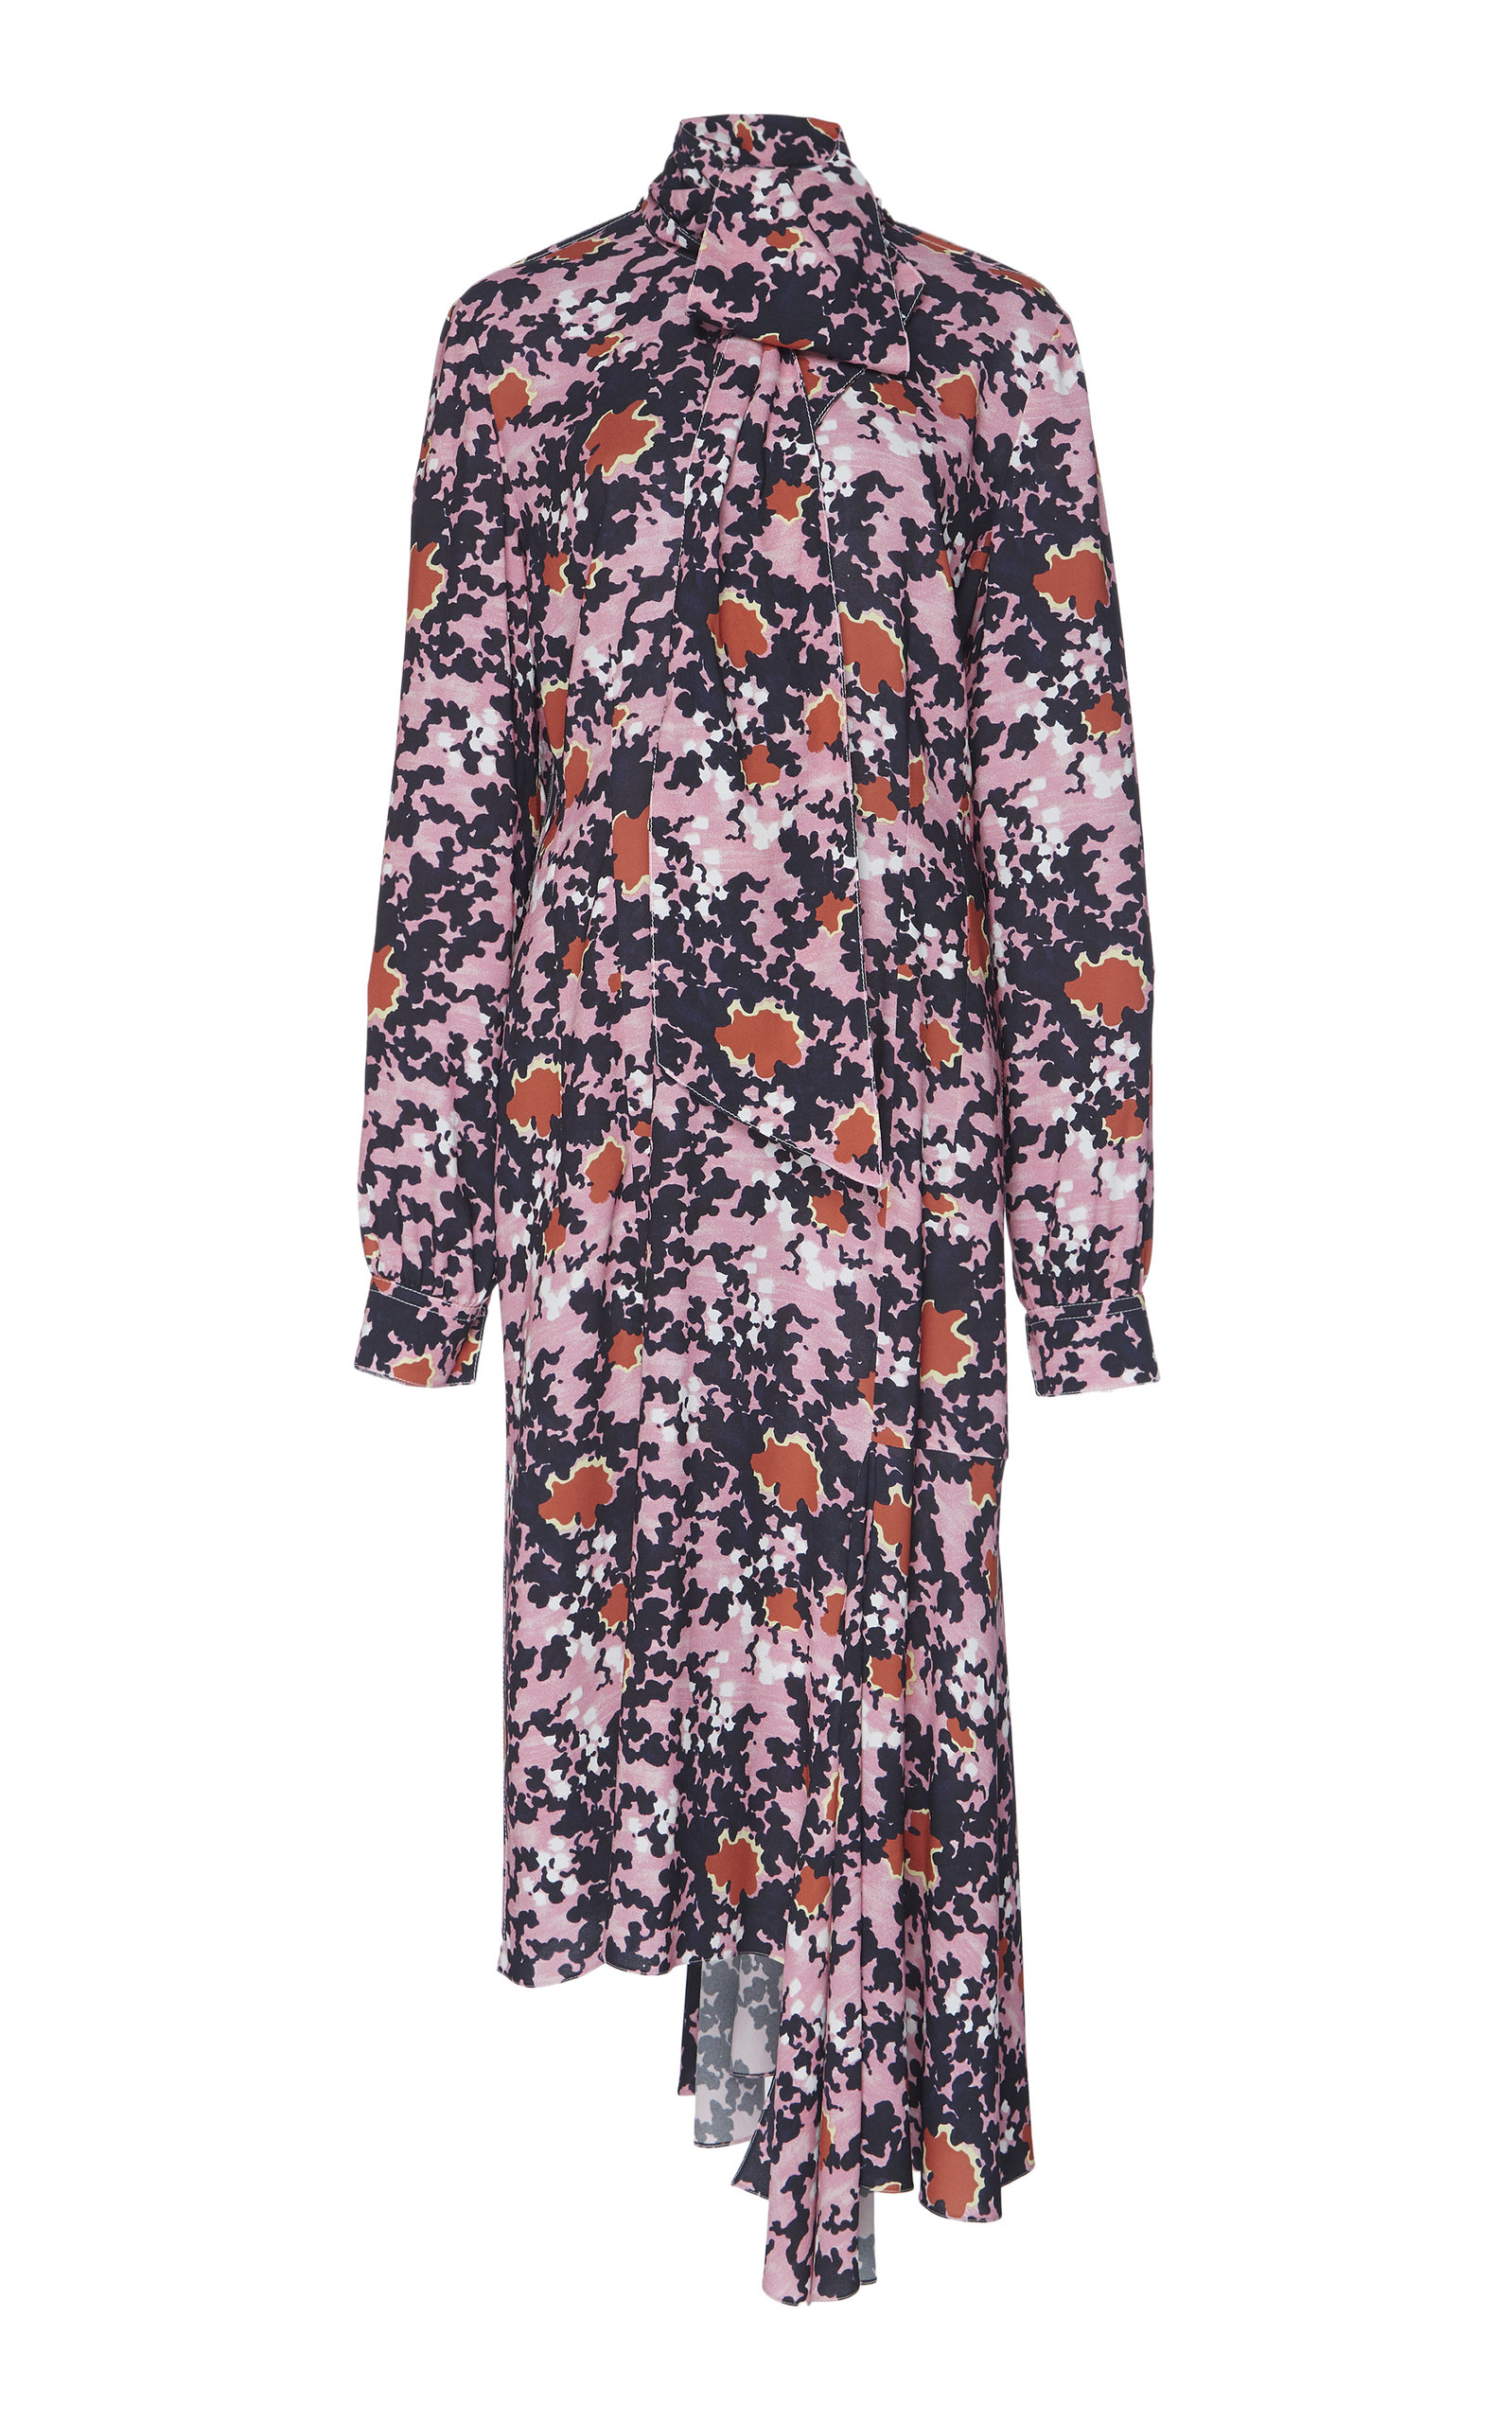 Buy Marni Asymmetric Floral Midi Dress online, shop Marni at the best price